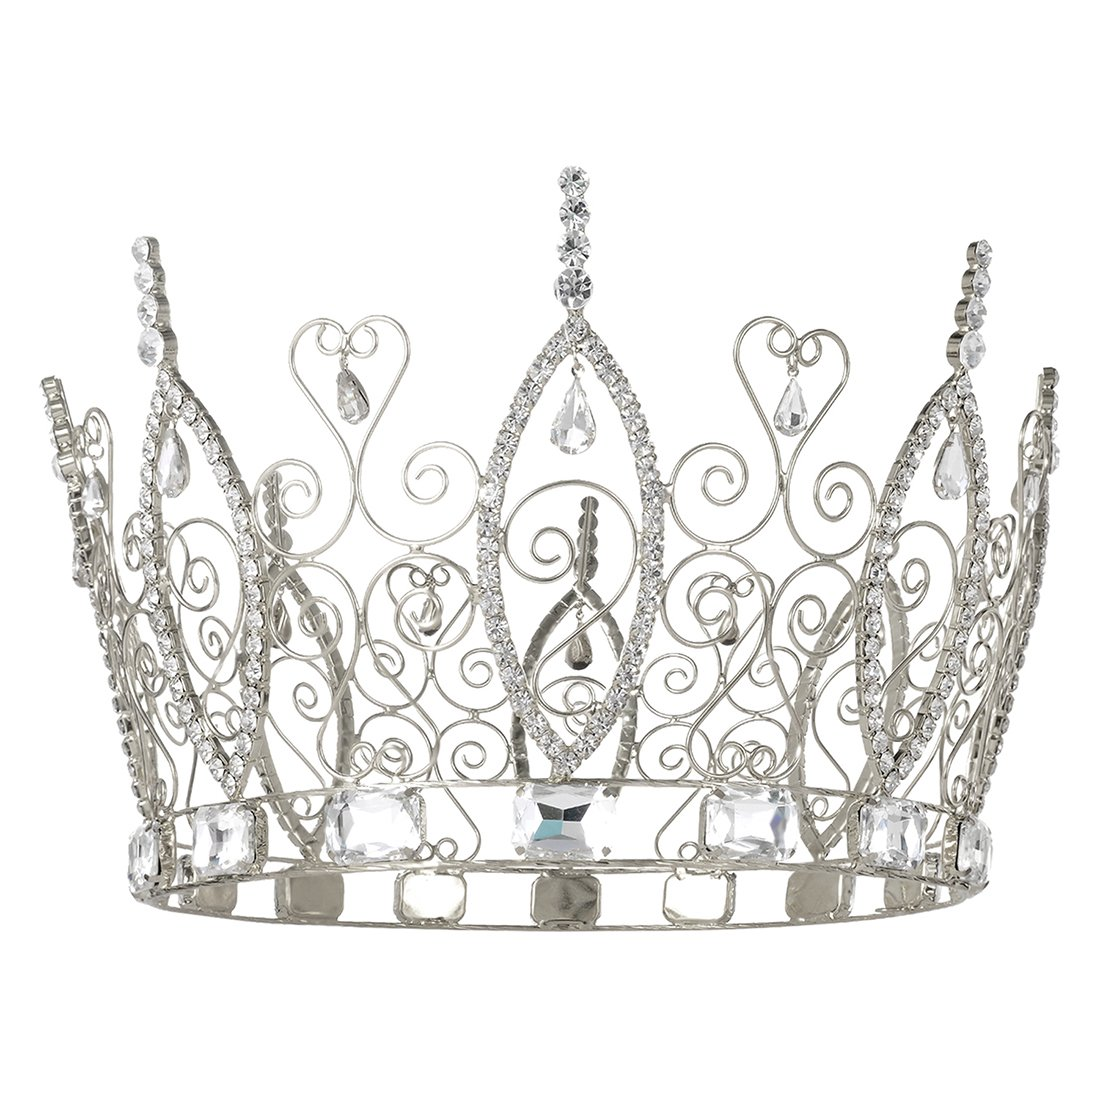 DcZeRong Pageant Prom Queen Crown Cake Topper Birthday Women Crowns Costume Homecoming Queen Crown Men's Crowns King Crowns For Men Pageant Party Prom Rhinestone Crystal Full Crowns